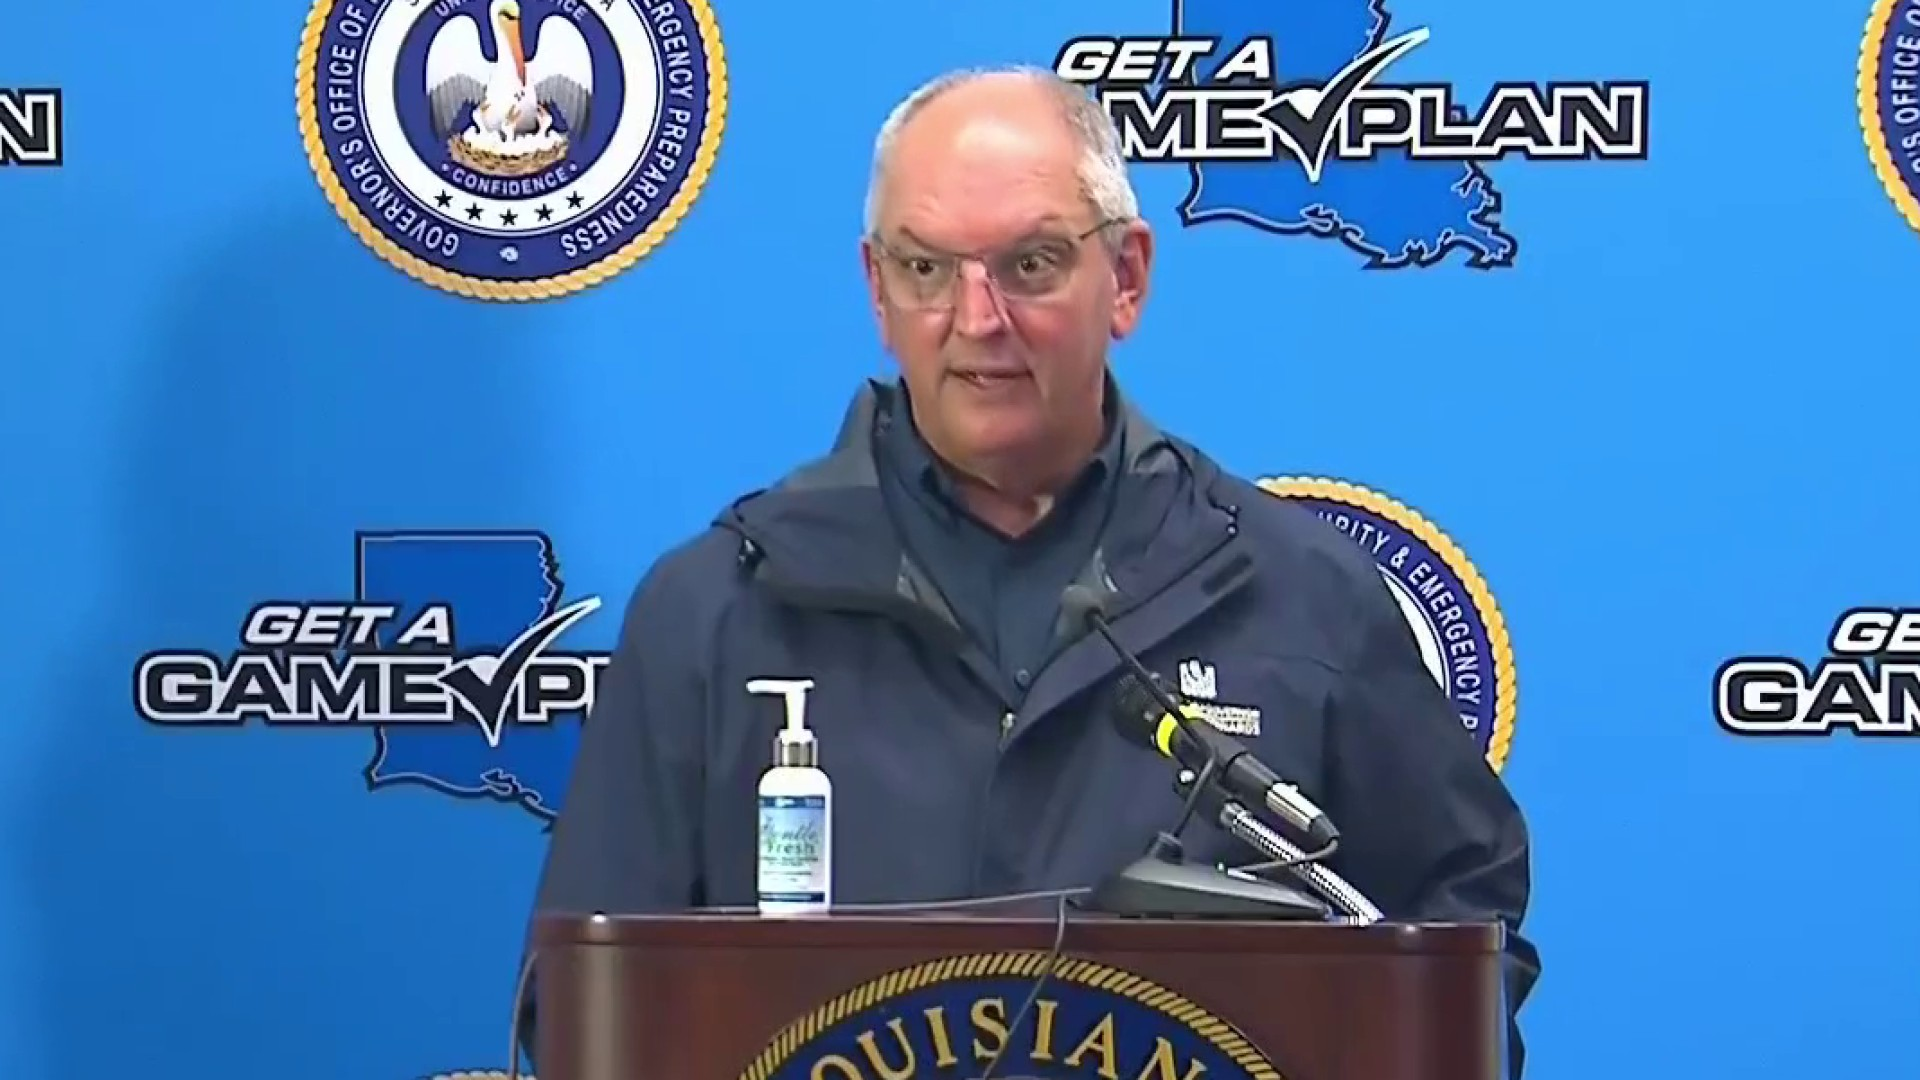 Louisiana governor: Be prepared to shelter in place 72 hours